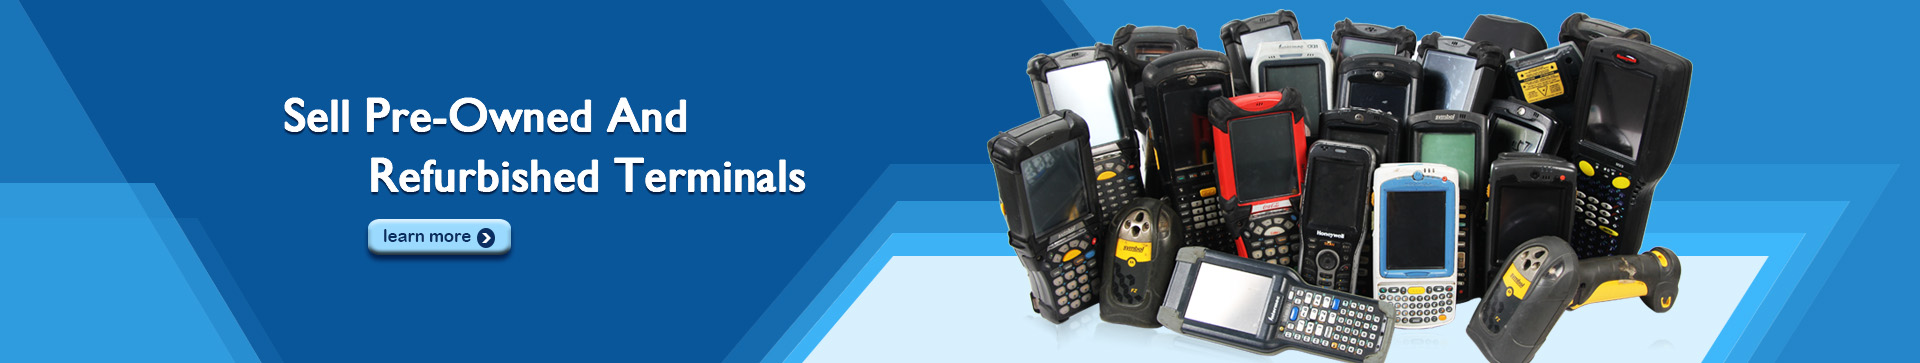 Sell Pre-Owned And Refurbished Terminals